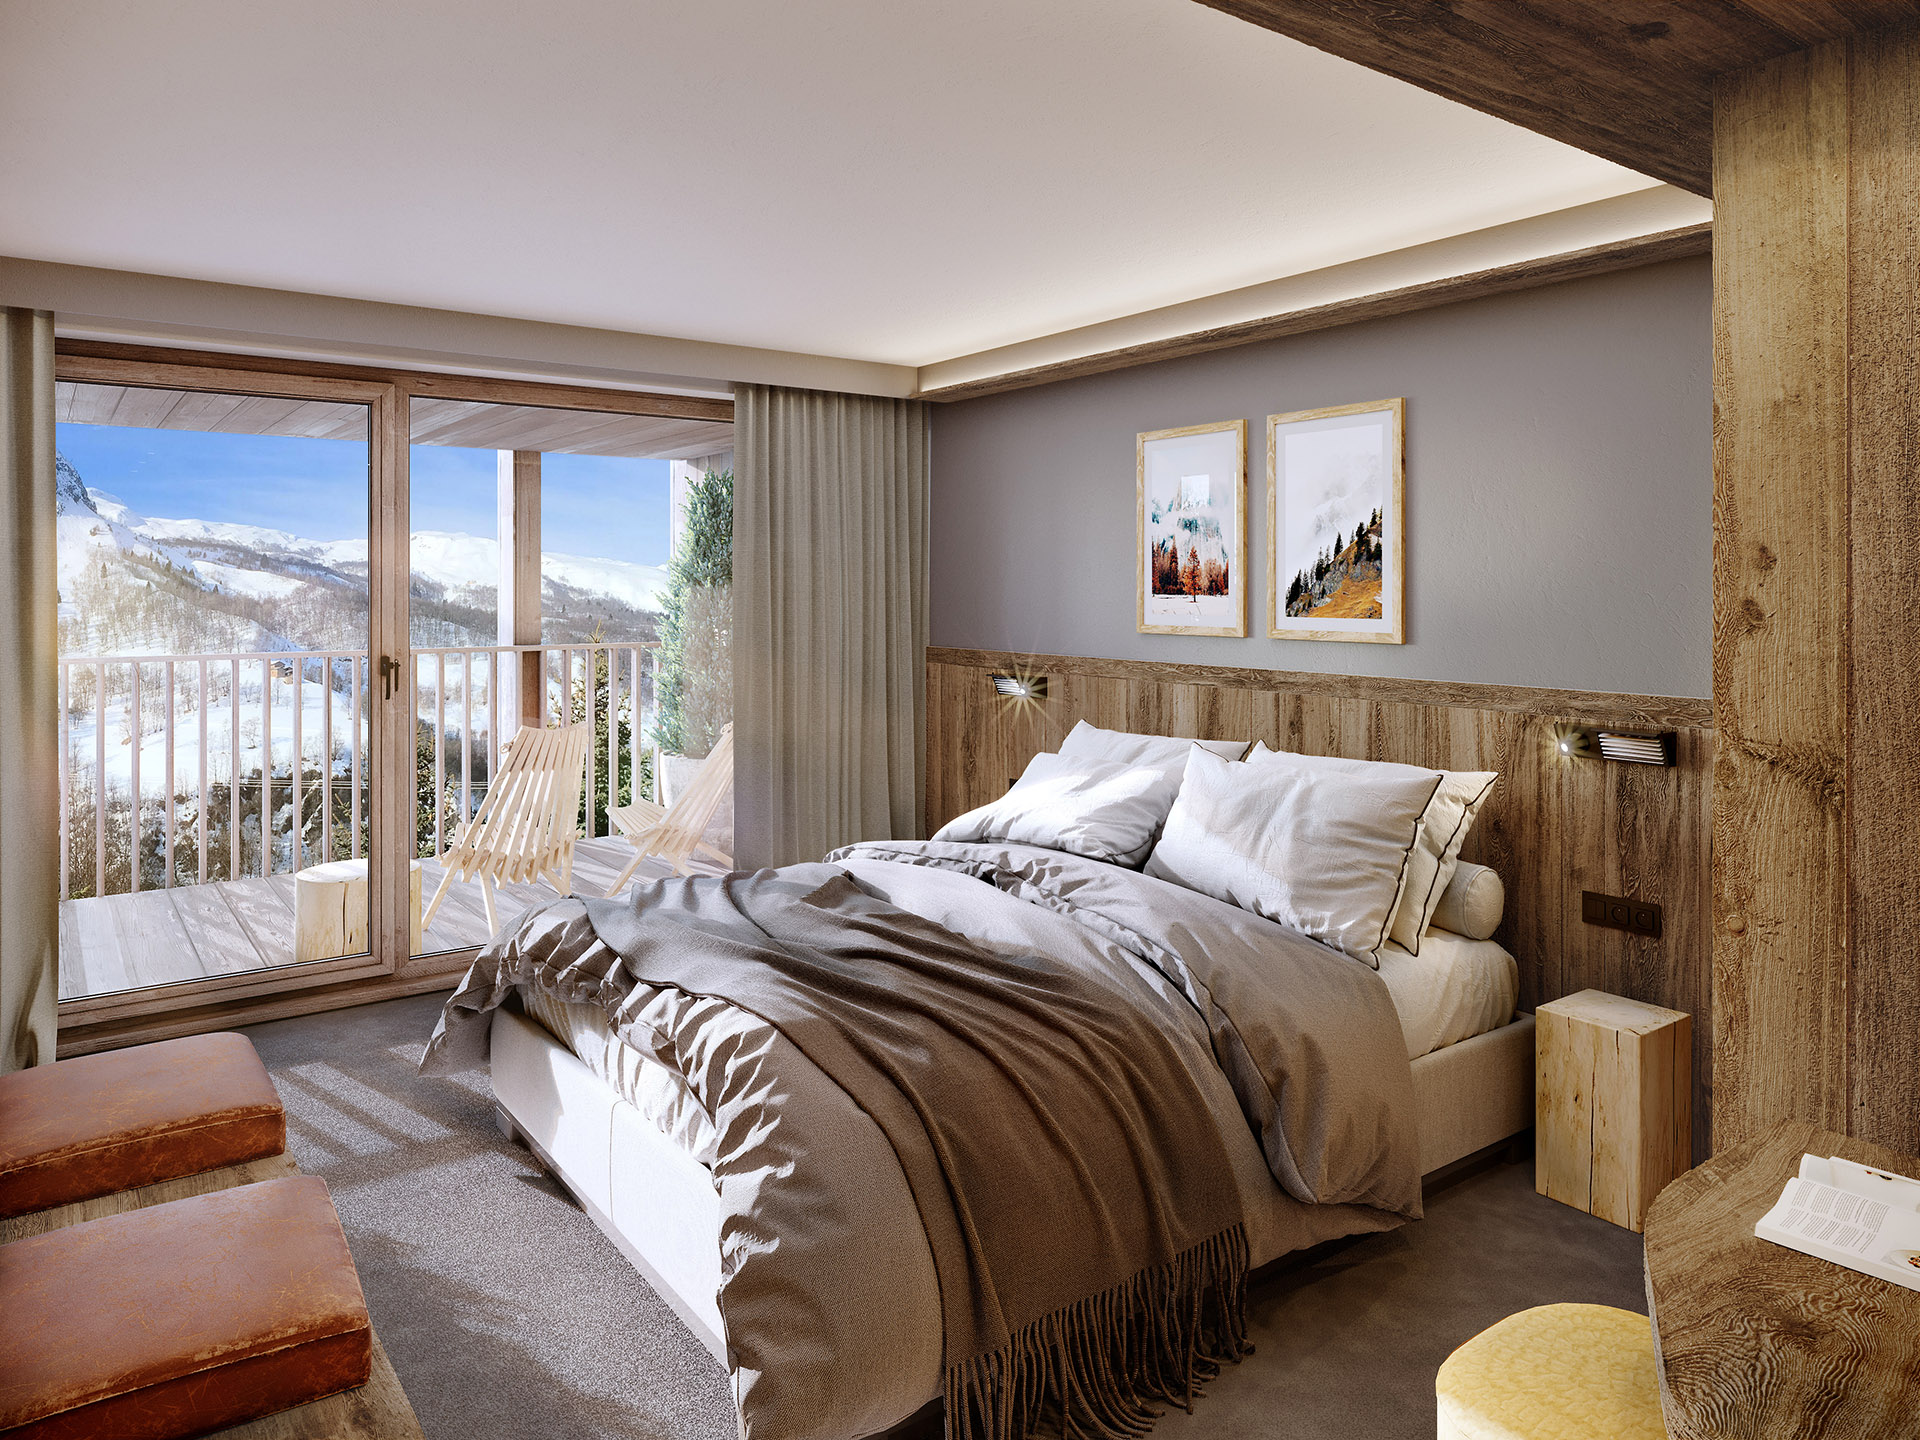 3D rendering of a room in a chalet in Chamonix